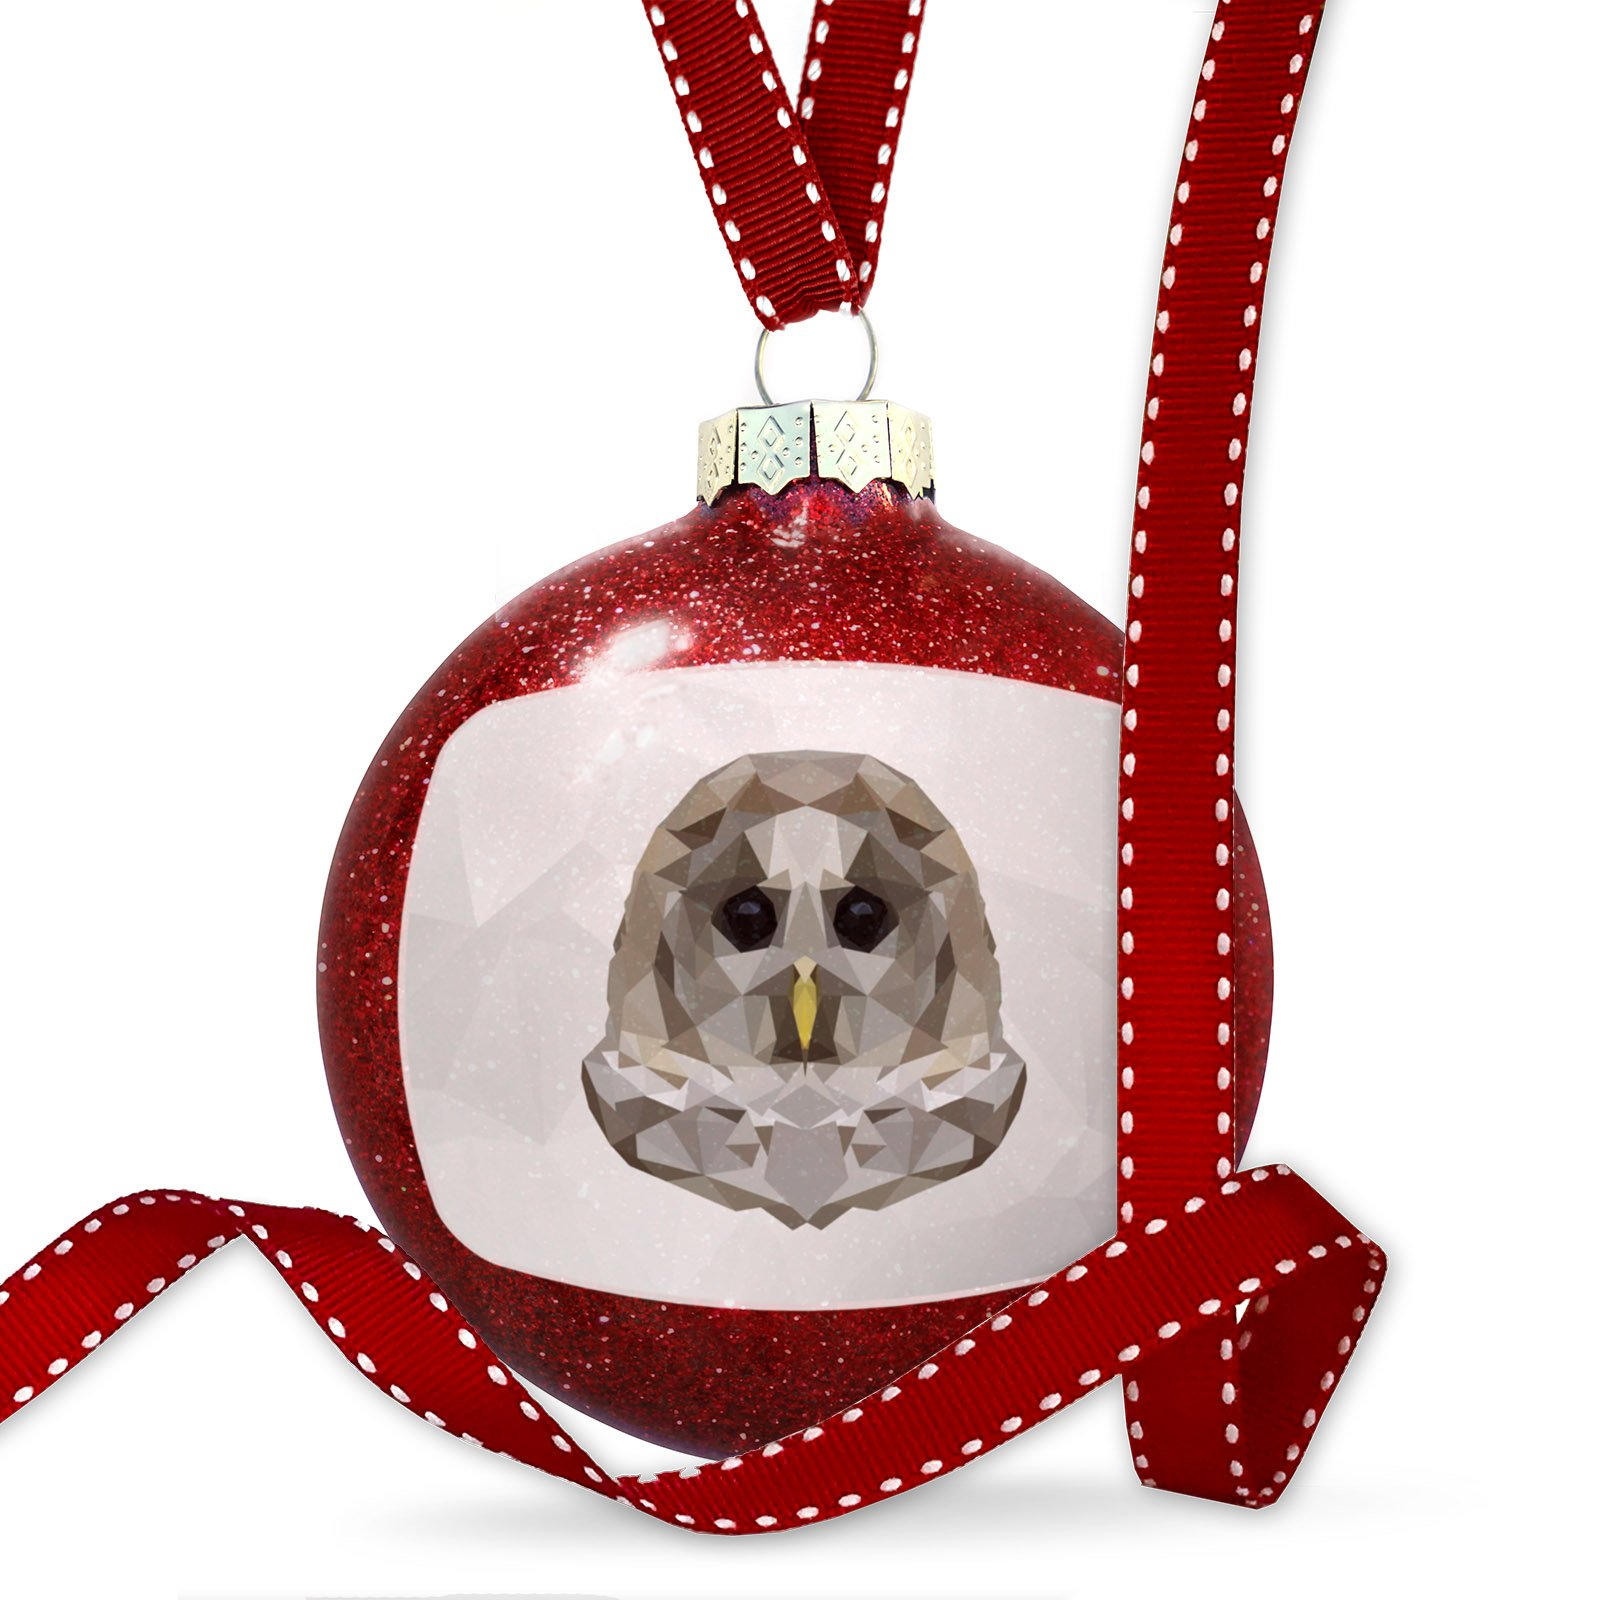 Christmas Decoration Low Poly zoo Animals Barred Owl Ornament